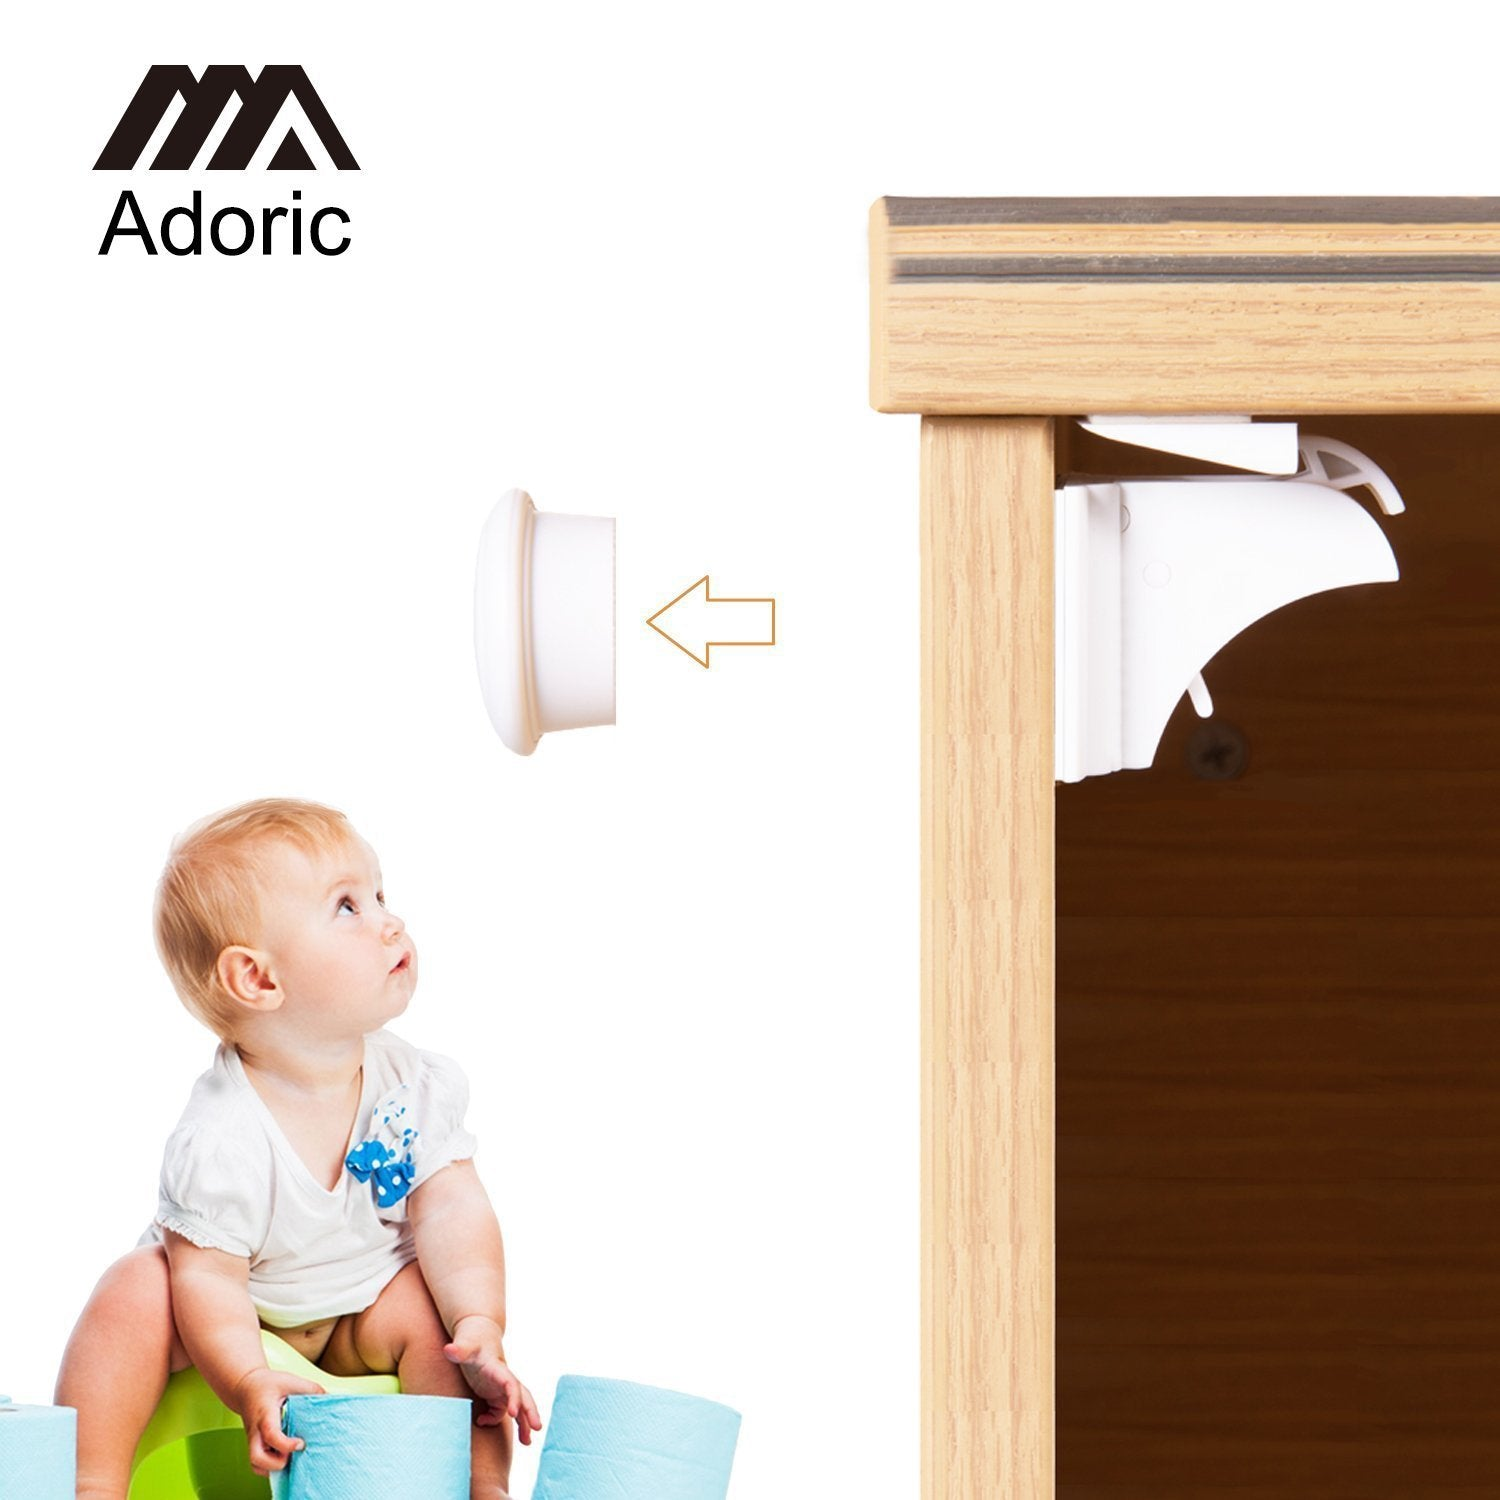 Adoric Magnetic Child Safety Cabinet Locks (6 Locks/2 Keys) with 3M Adhesive for Cabinets and Drawers